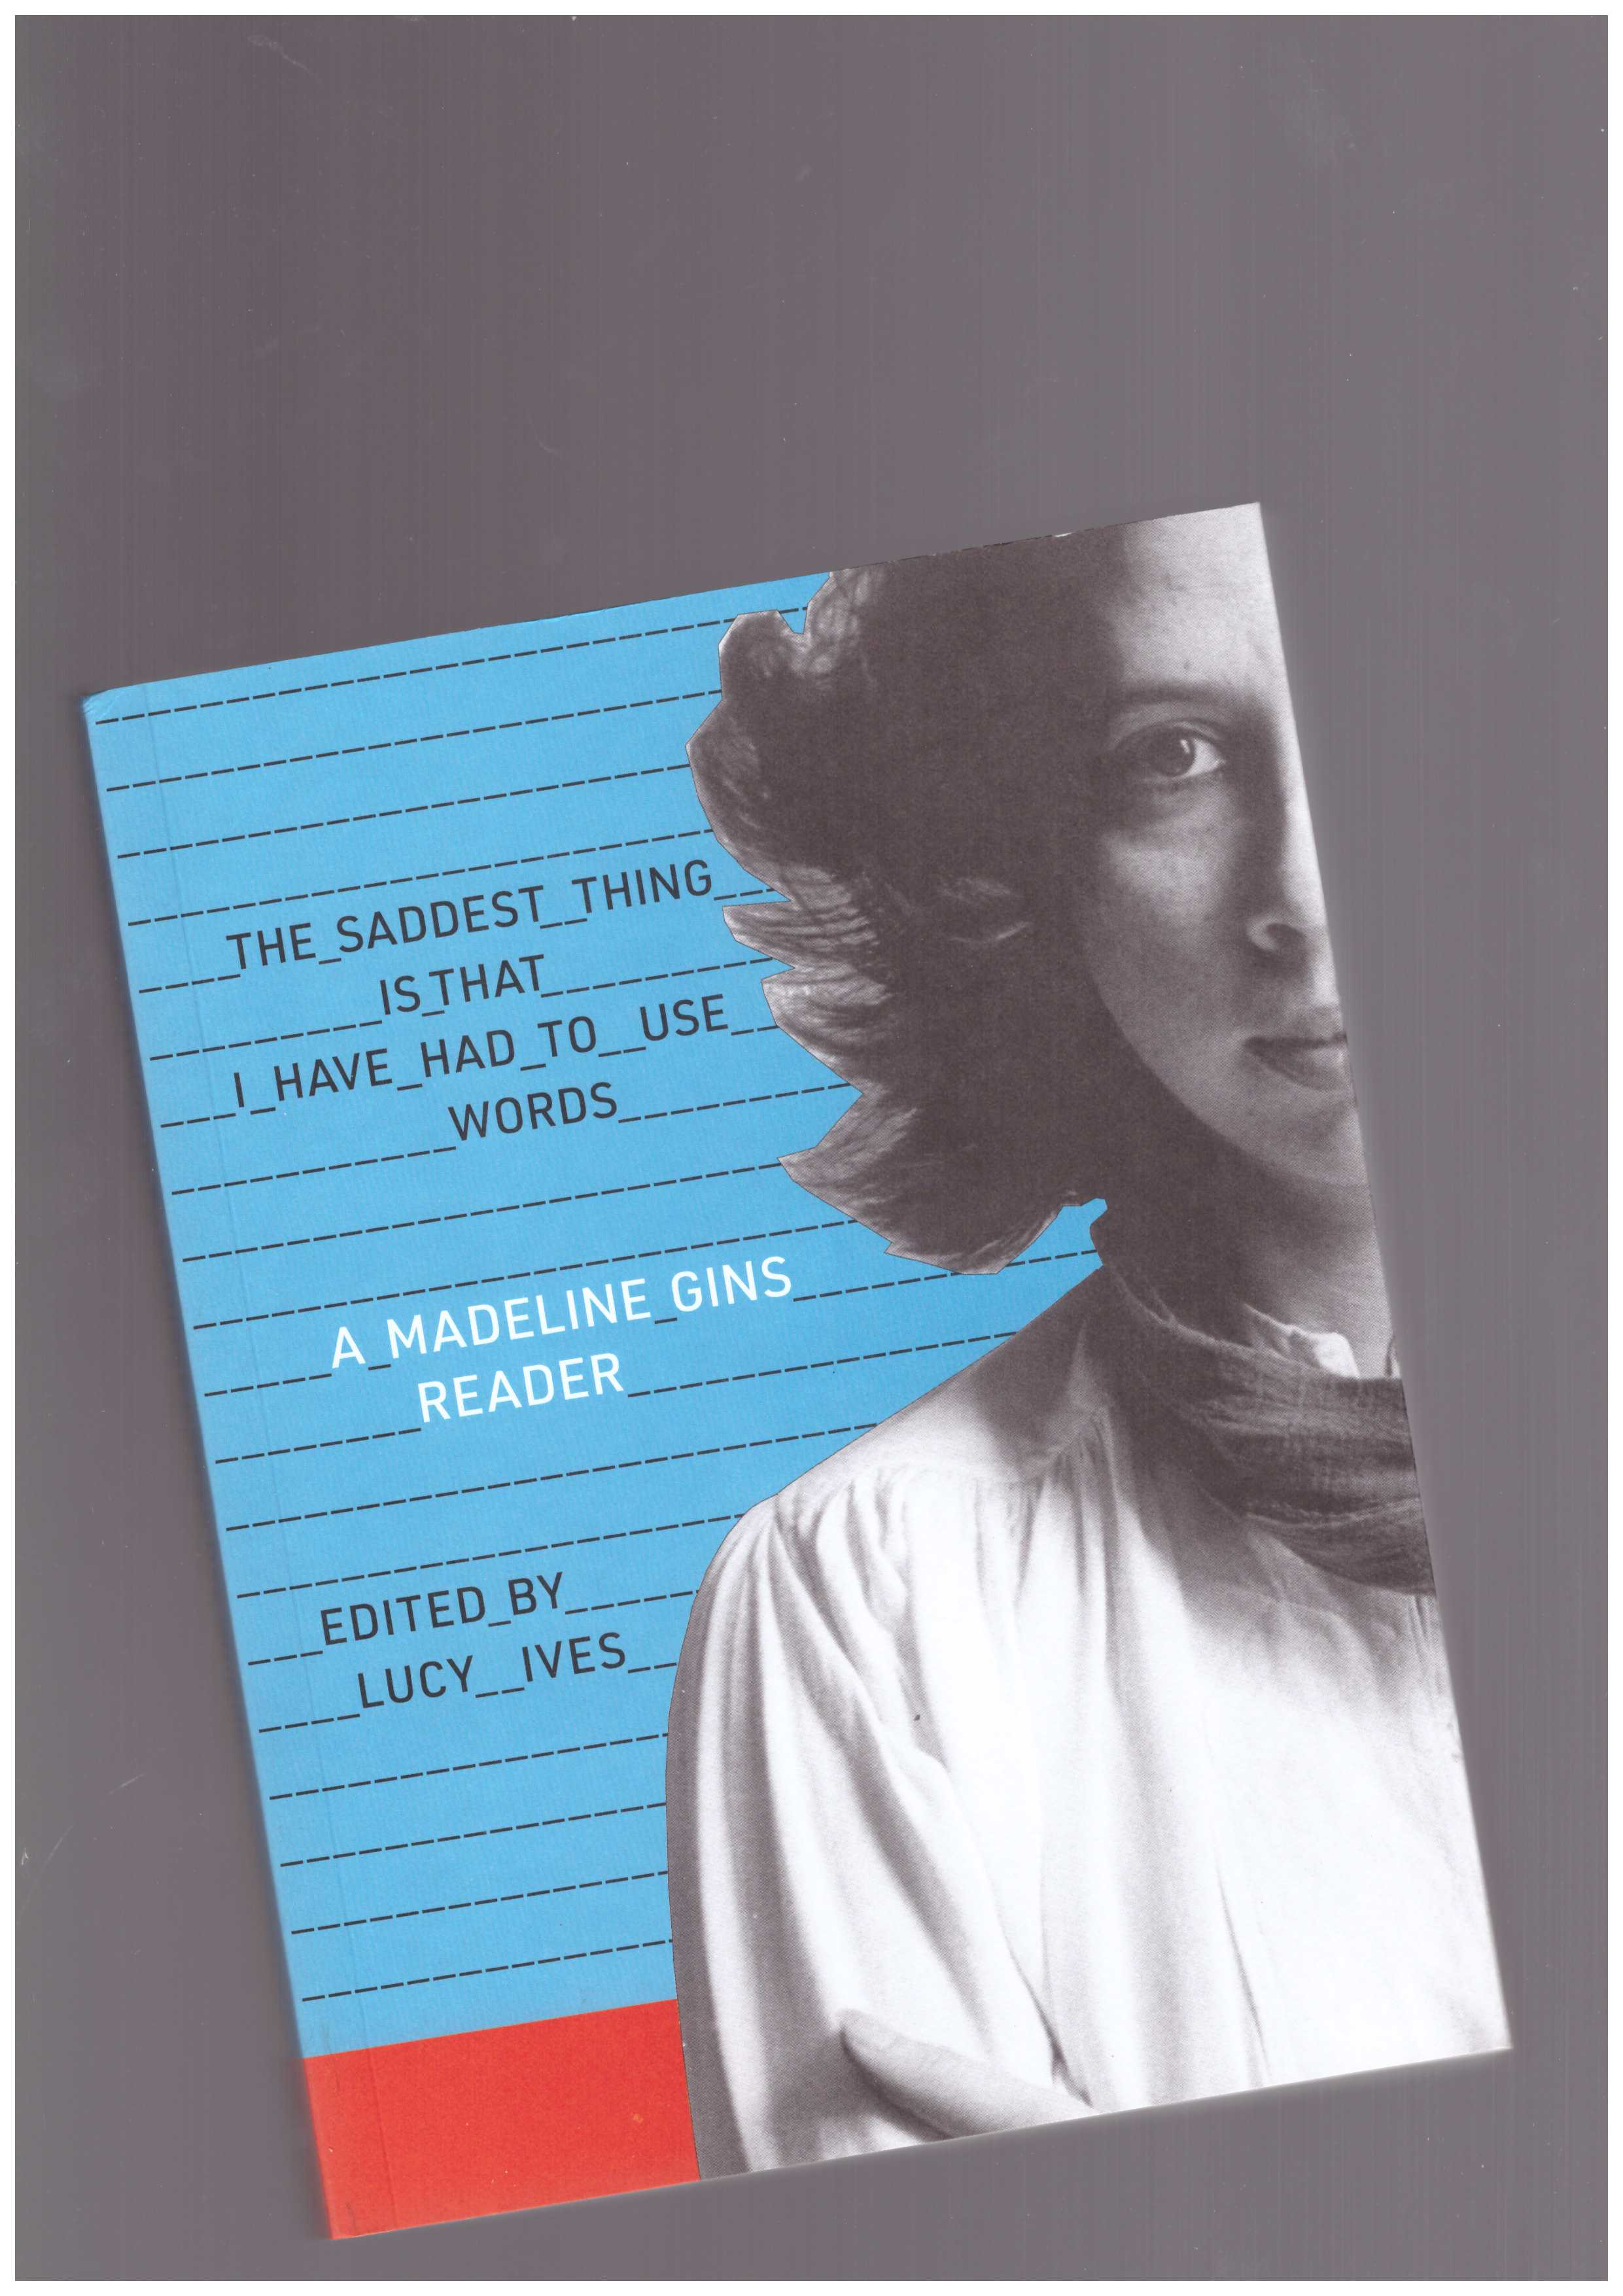 GINS, Madeline; IVES, Lucy (ed.) - The Saddest Thing Is That I Have Had to Use Words: A Madeline Gins Reader